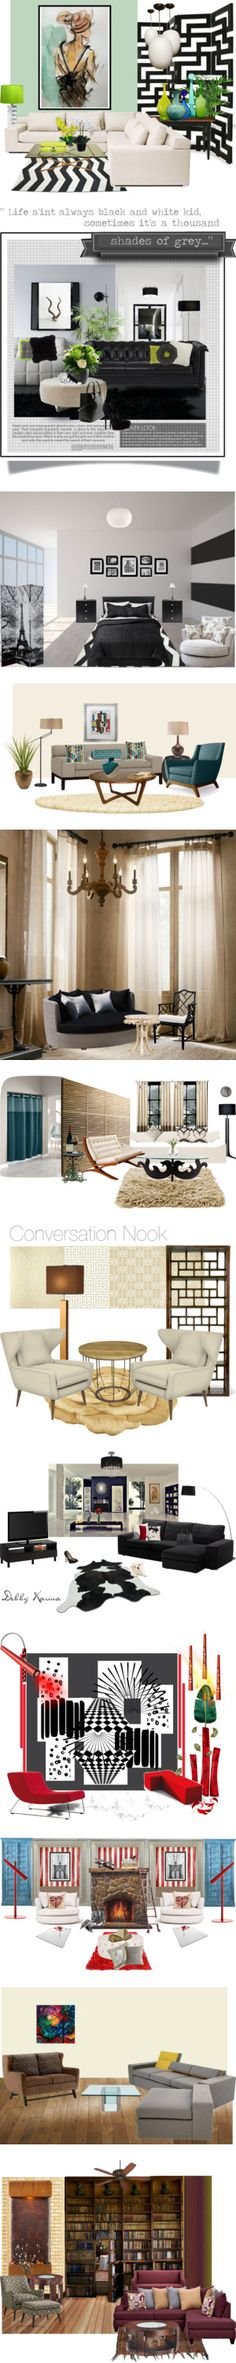 """Top Interior Design Sets for Jan 6th, 2013"" by polyvore ❤ liked on Polyvore"